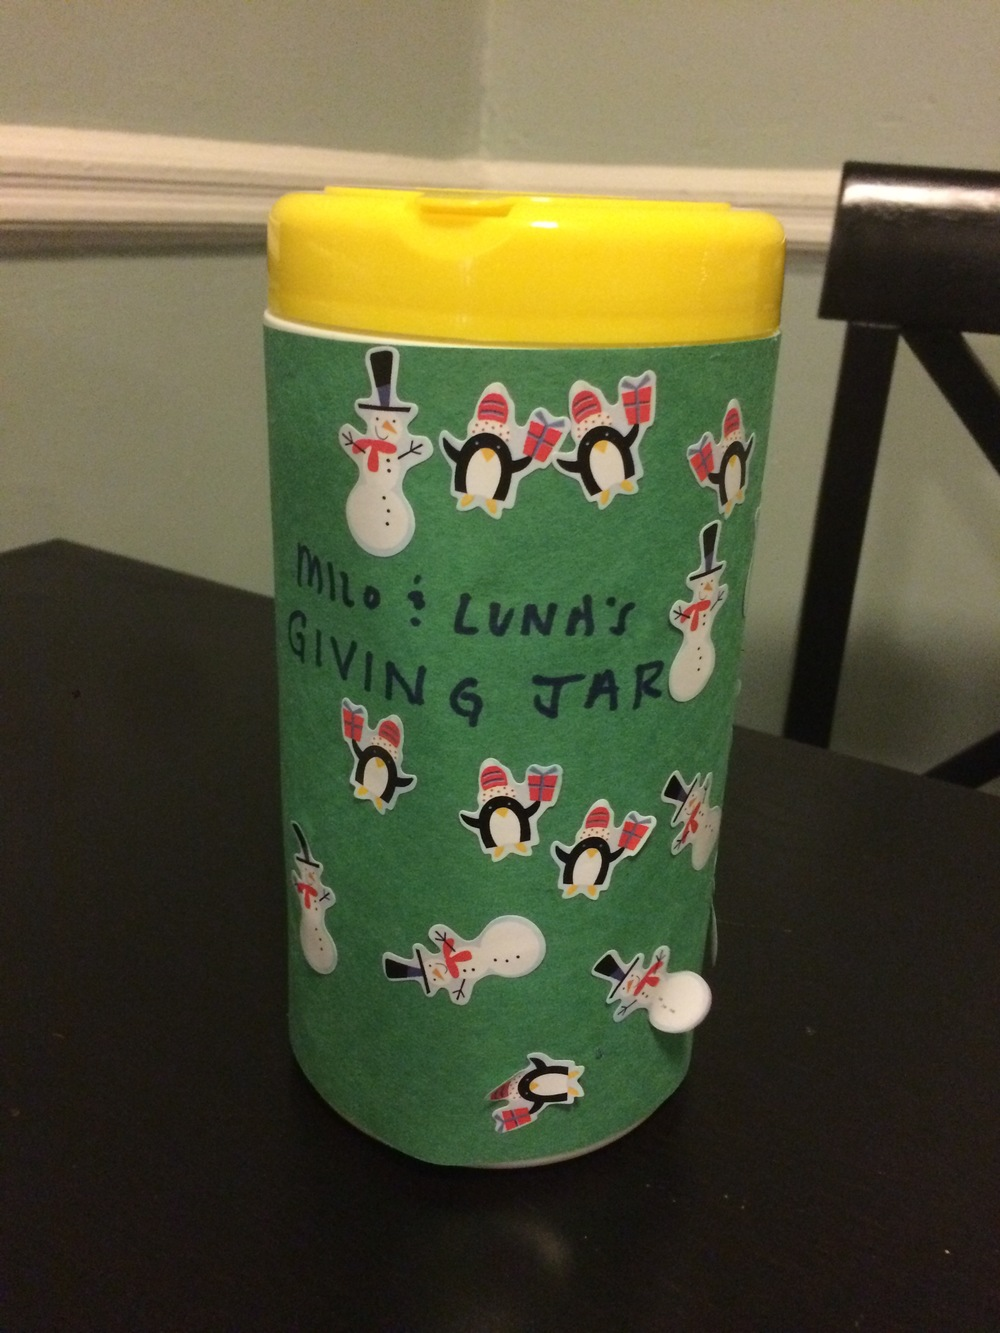 Creating a  Giving Jar  to collect money to donate.